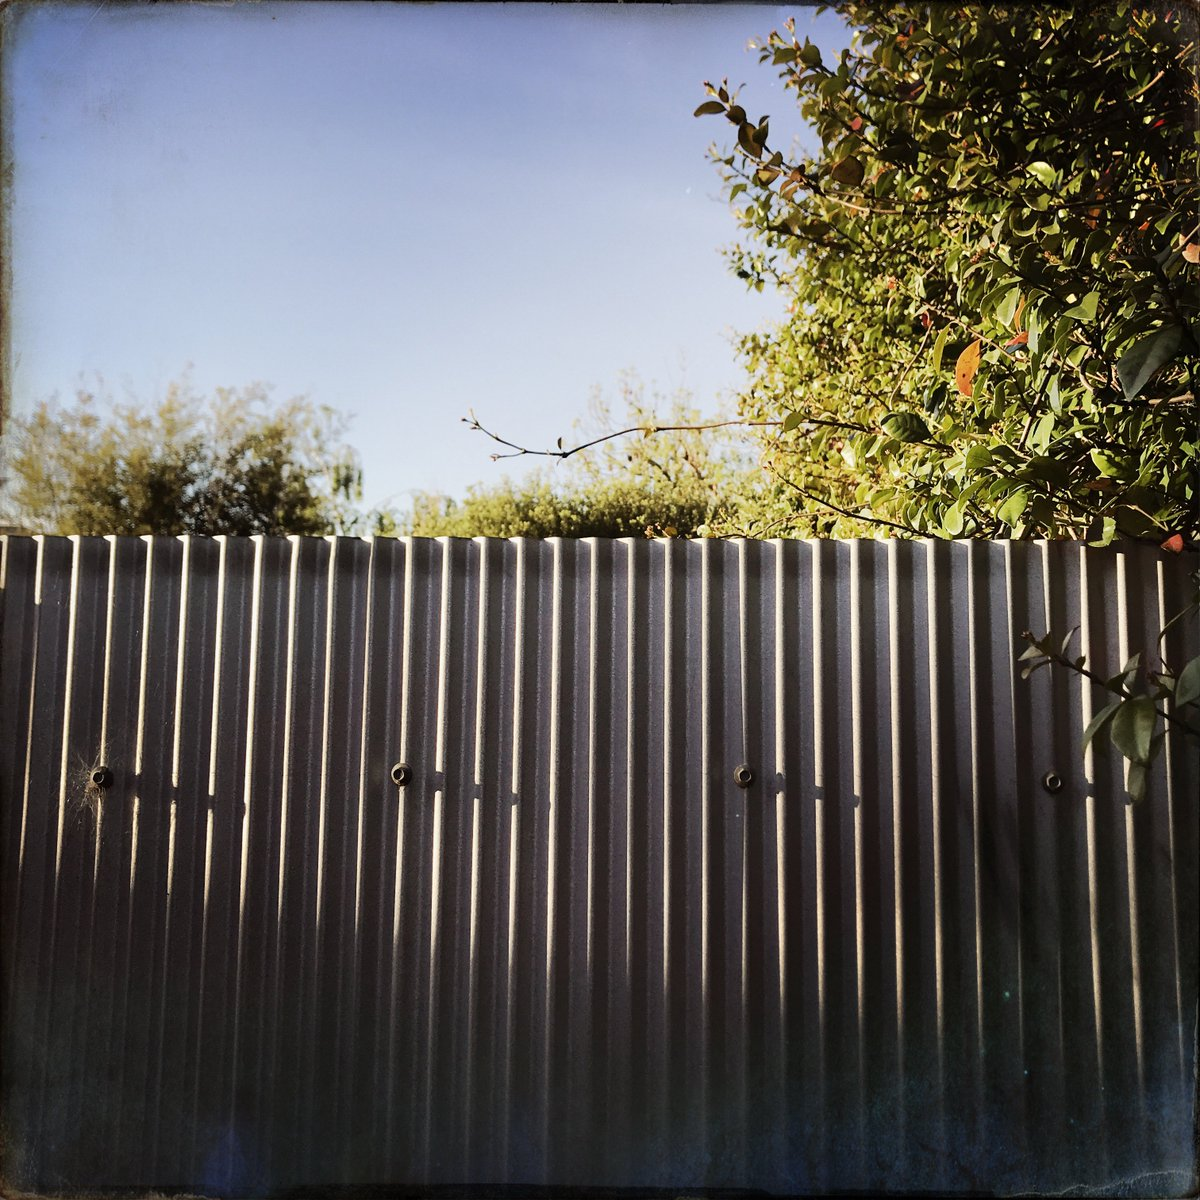 fade into . #shadows #corrugated #flora #sky #Hipstamatic https://t.co/cfTlYS9HYT